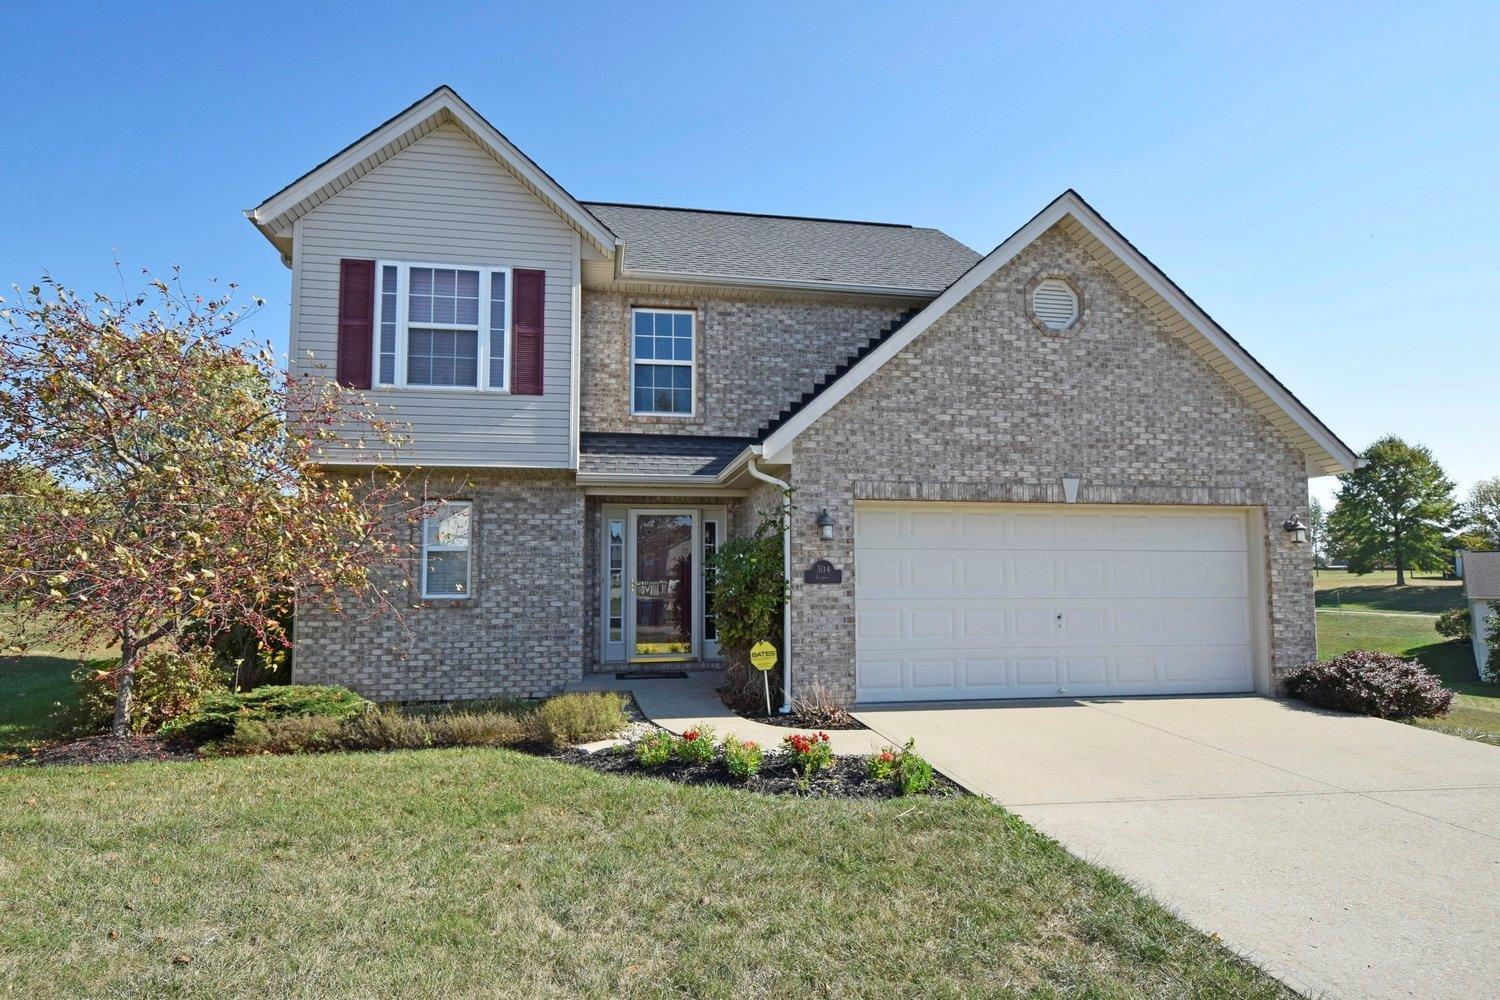 304 Fairway Dr Dry Ridge, KY